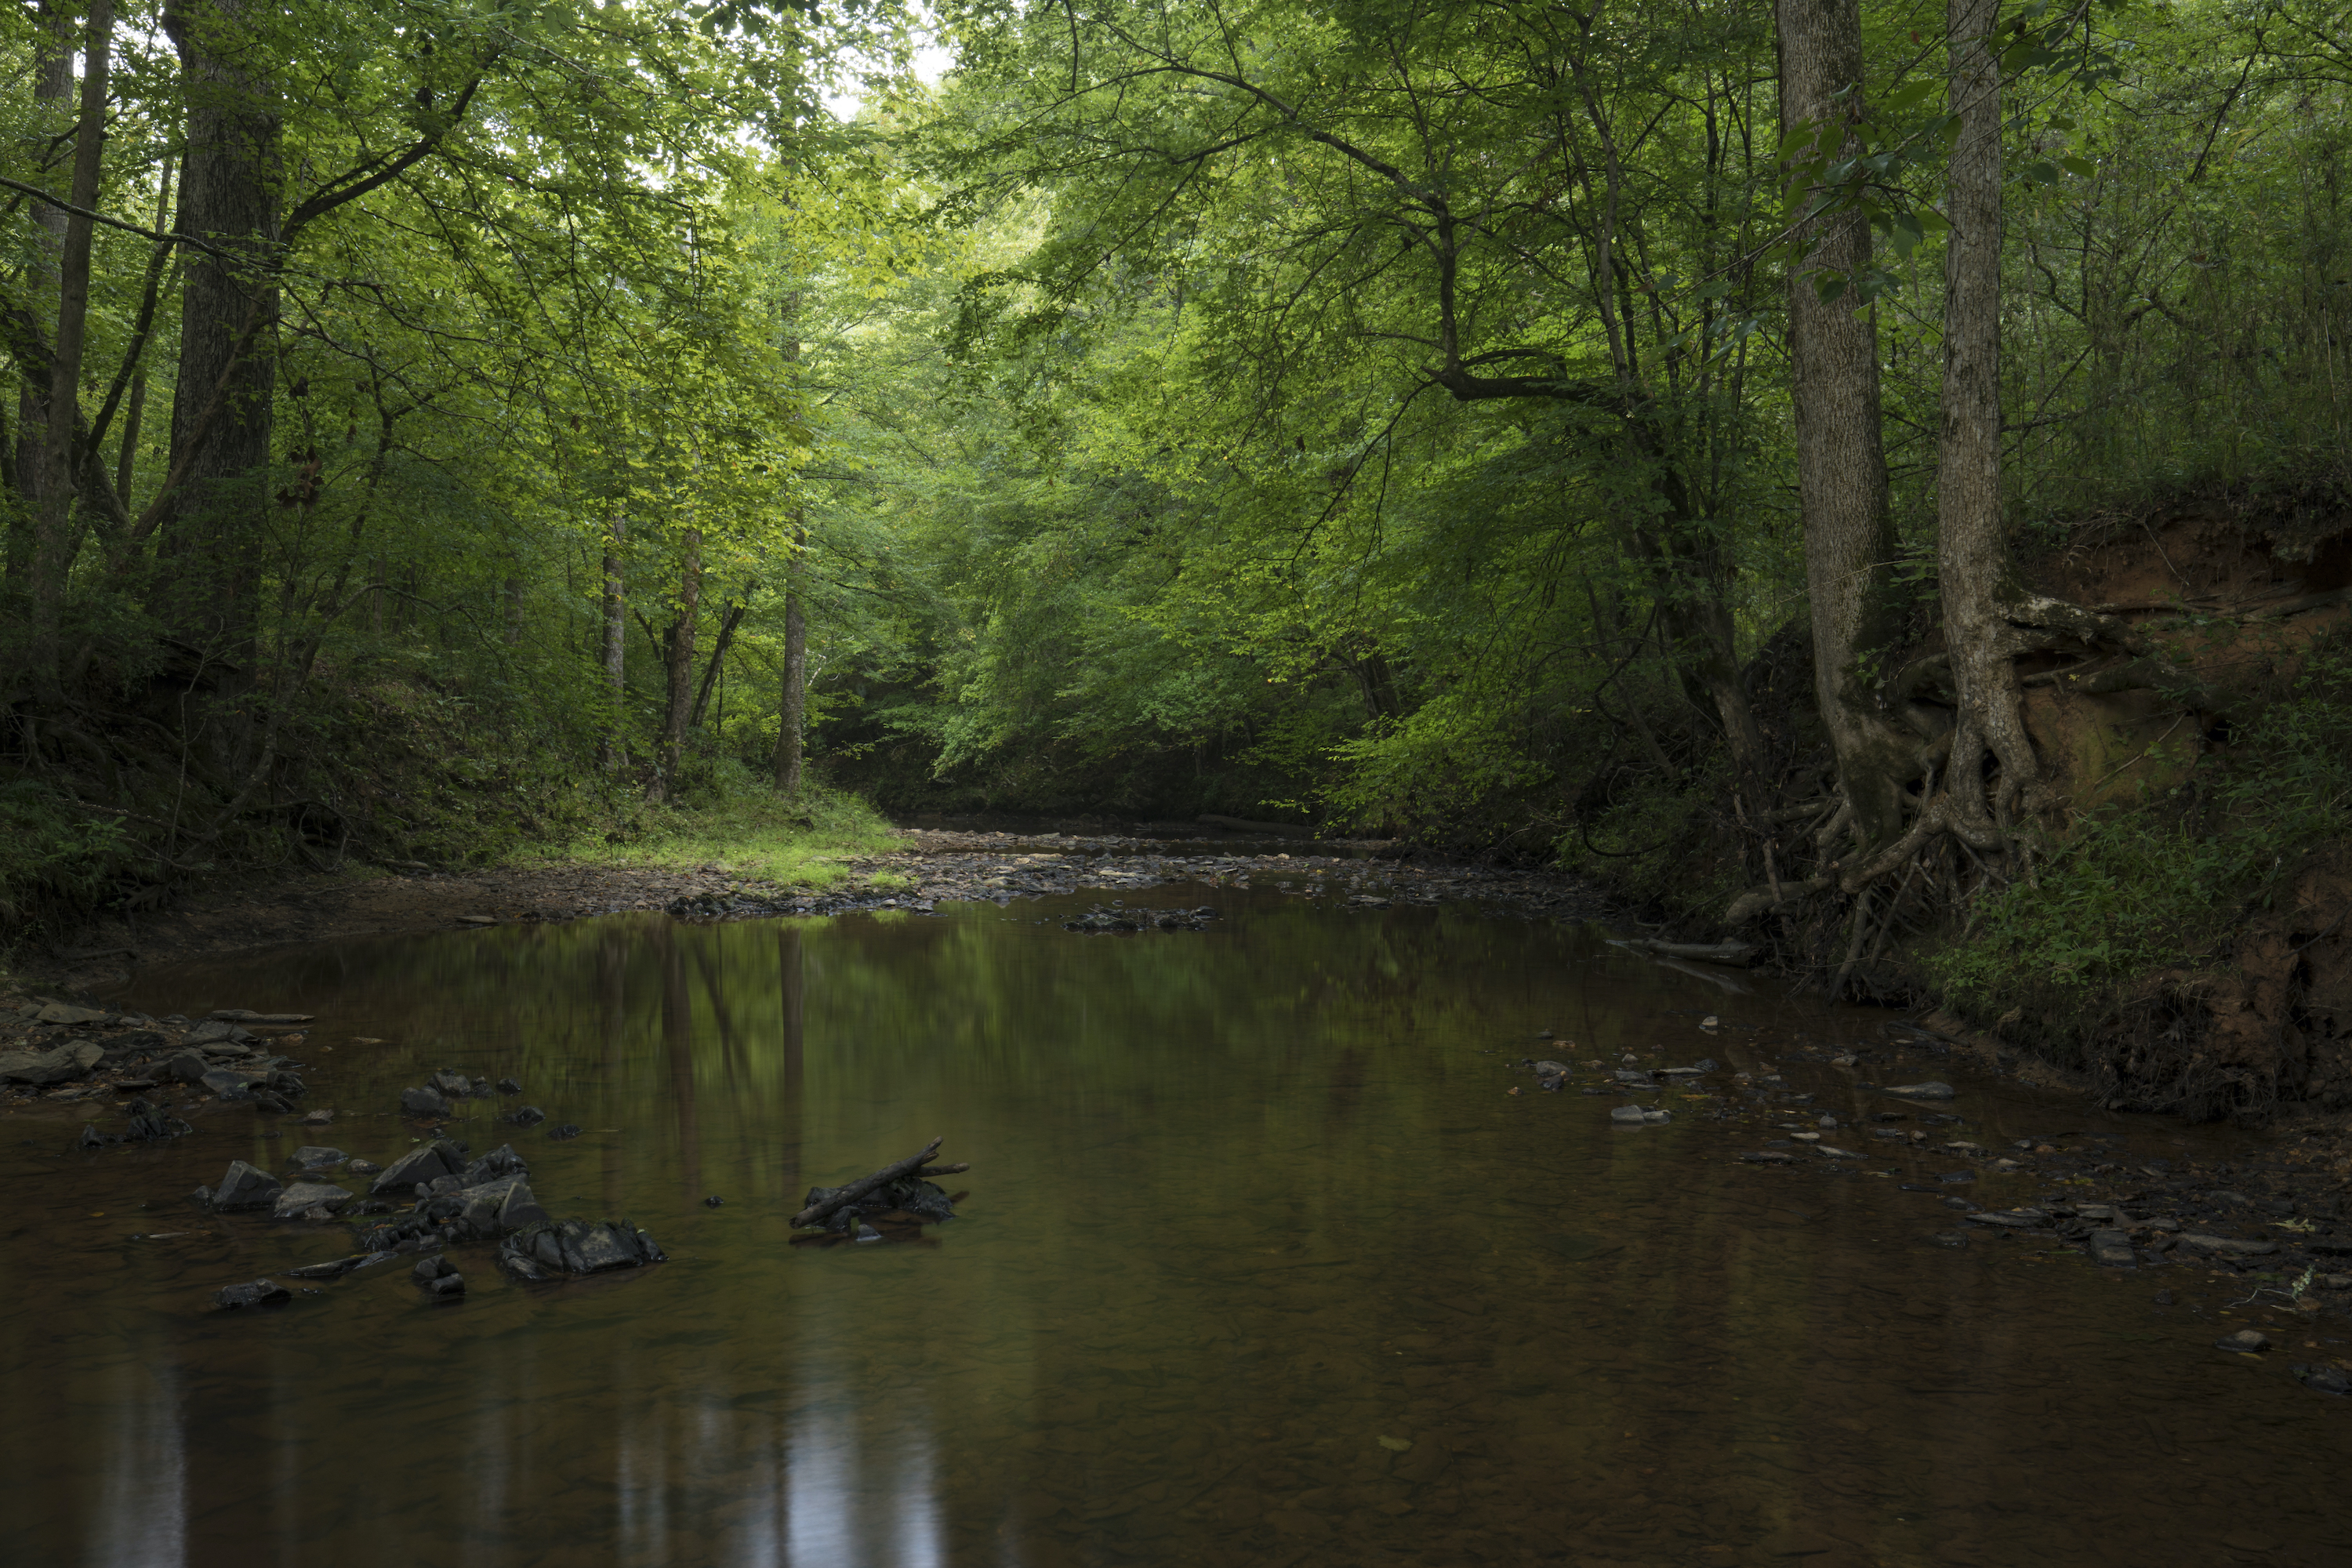 The Price and Mathis additions provide important watershed protection for the Savannah River basin.